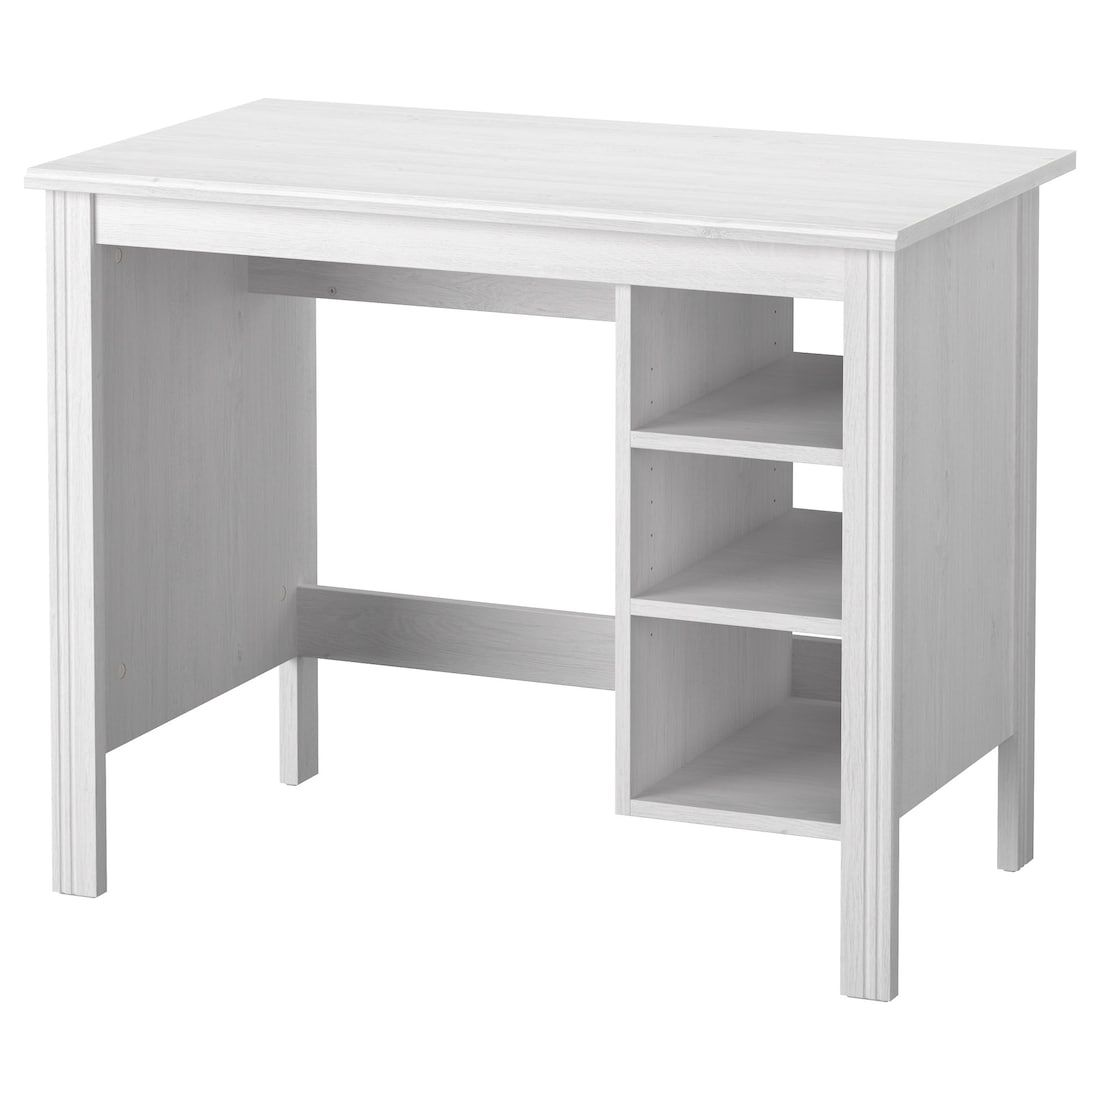 Brusali Desk White 90x52 Cm In 2020 White Desks Bureau Ikea Ikea Computer Desk